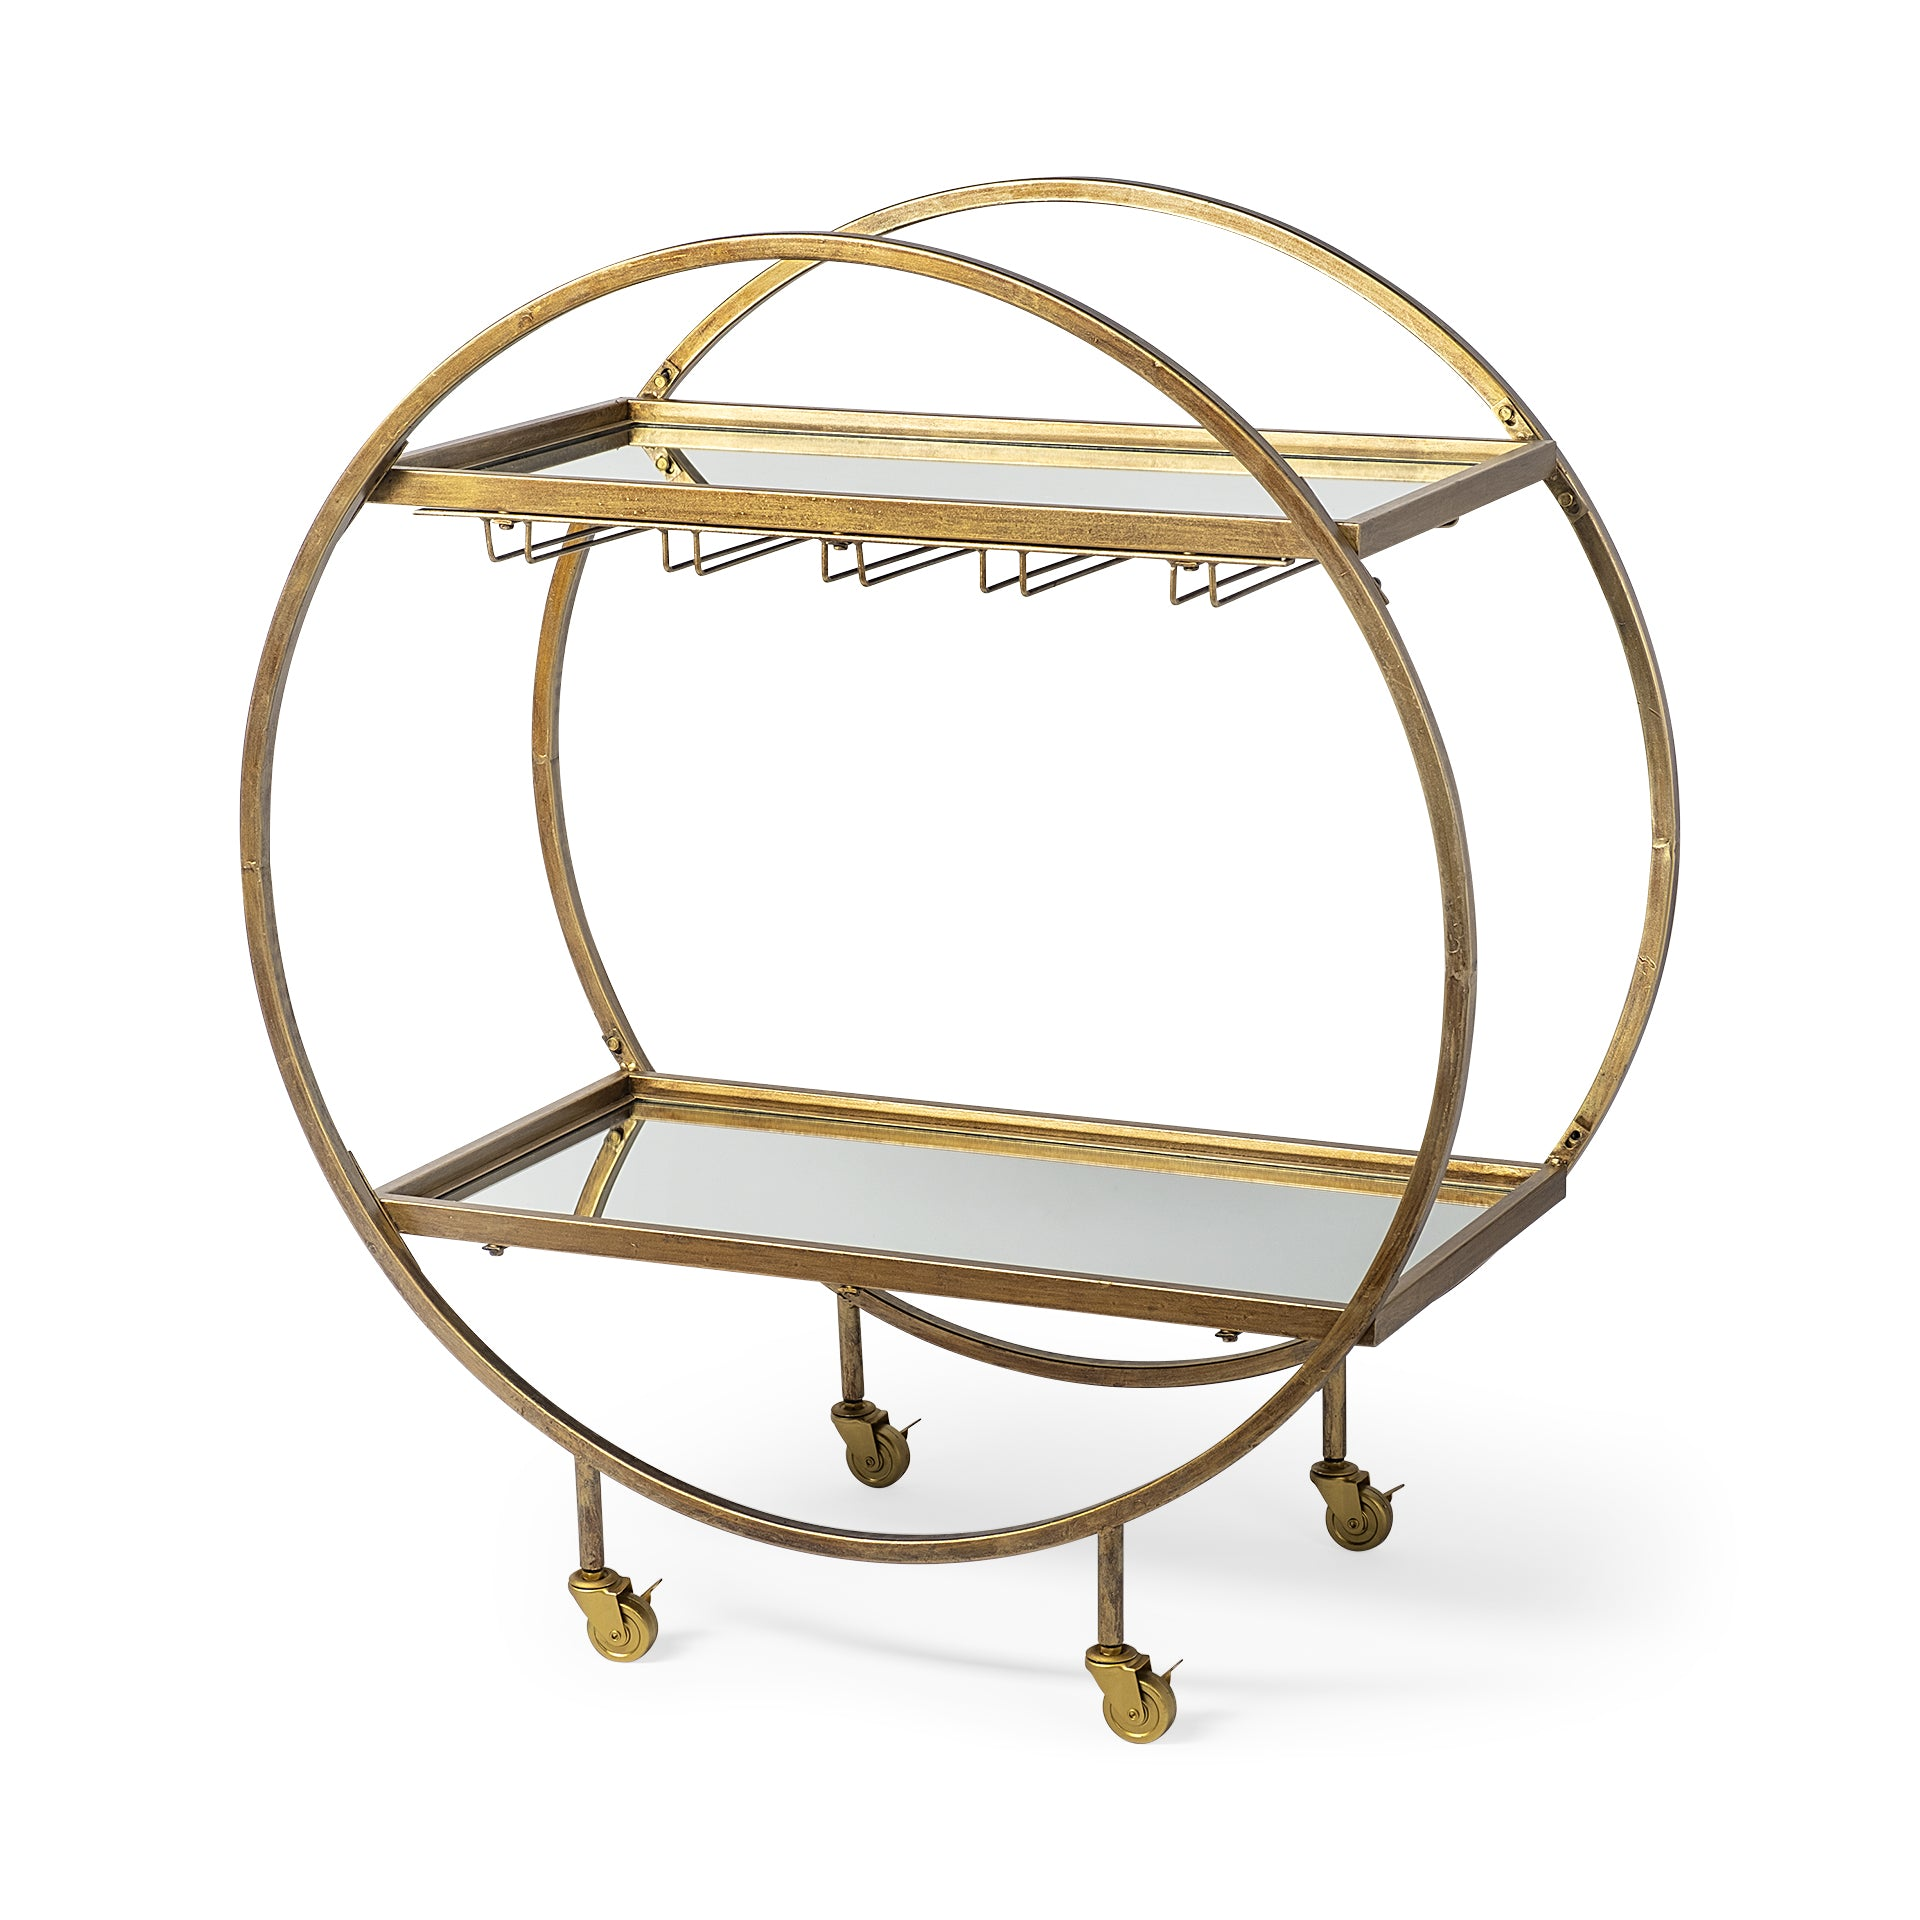 Circular Chasis Antique Gold Metal With Two Mirror Glass Shelves Bar Cart